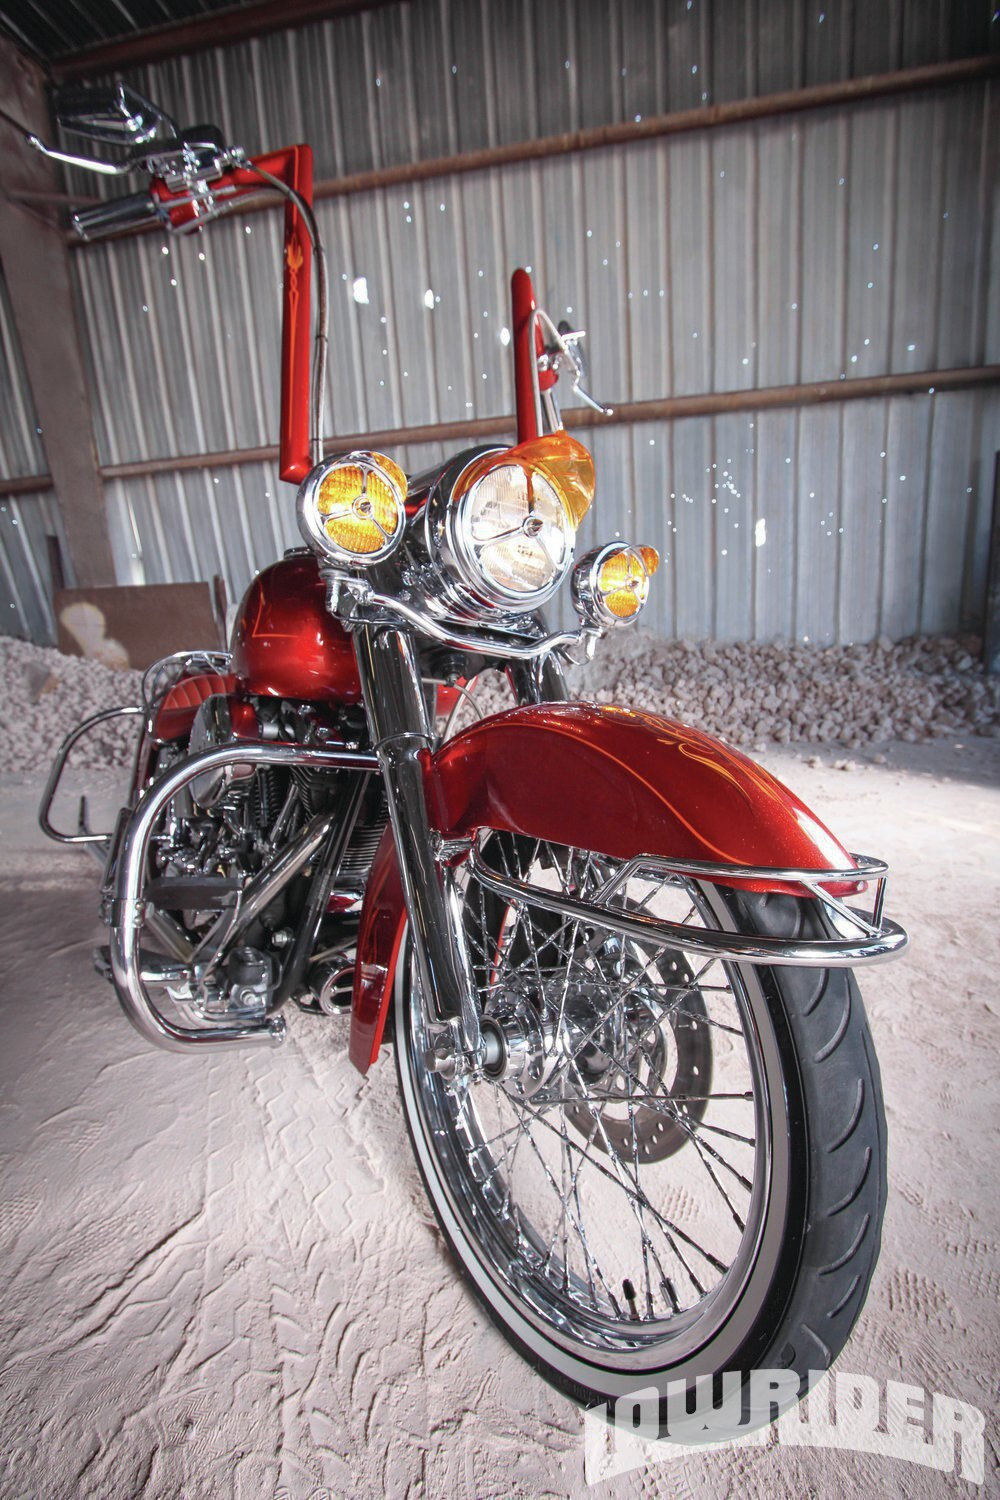 2004-harley-davidson-fatboy-front-view